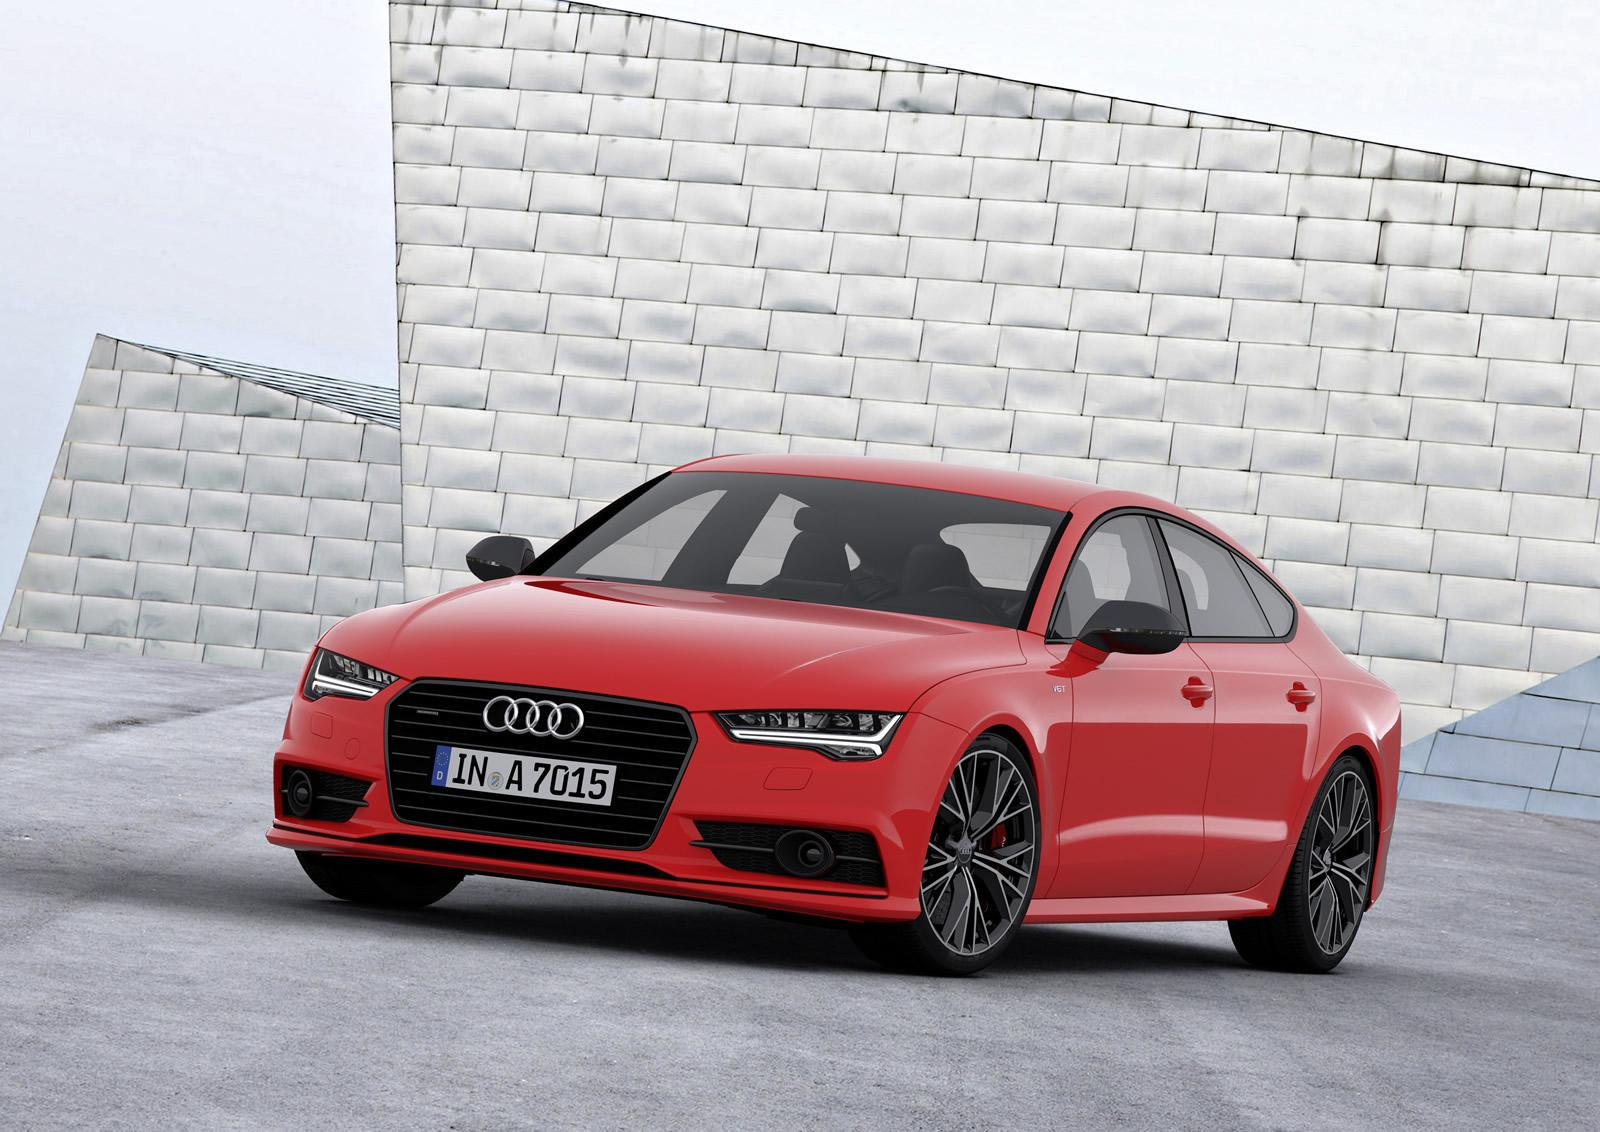 New Audi A7 Sportback 3 0 Tdi Competition Packs 326 Hp Of